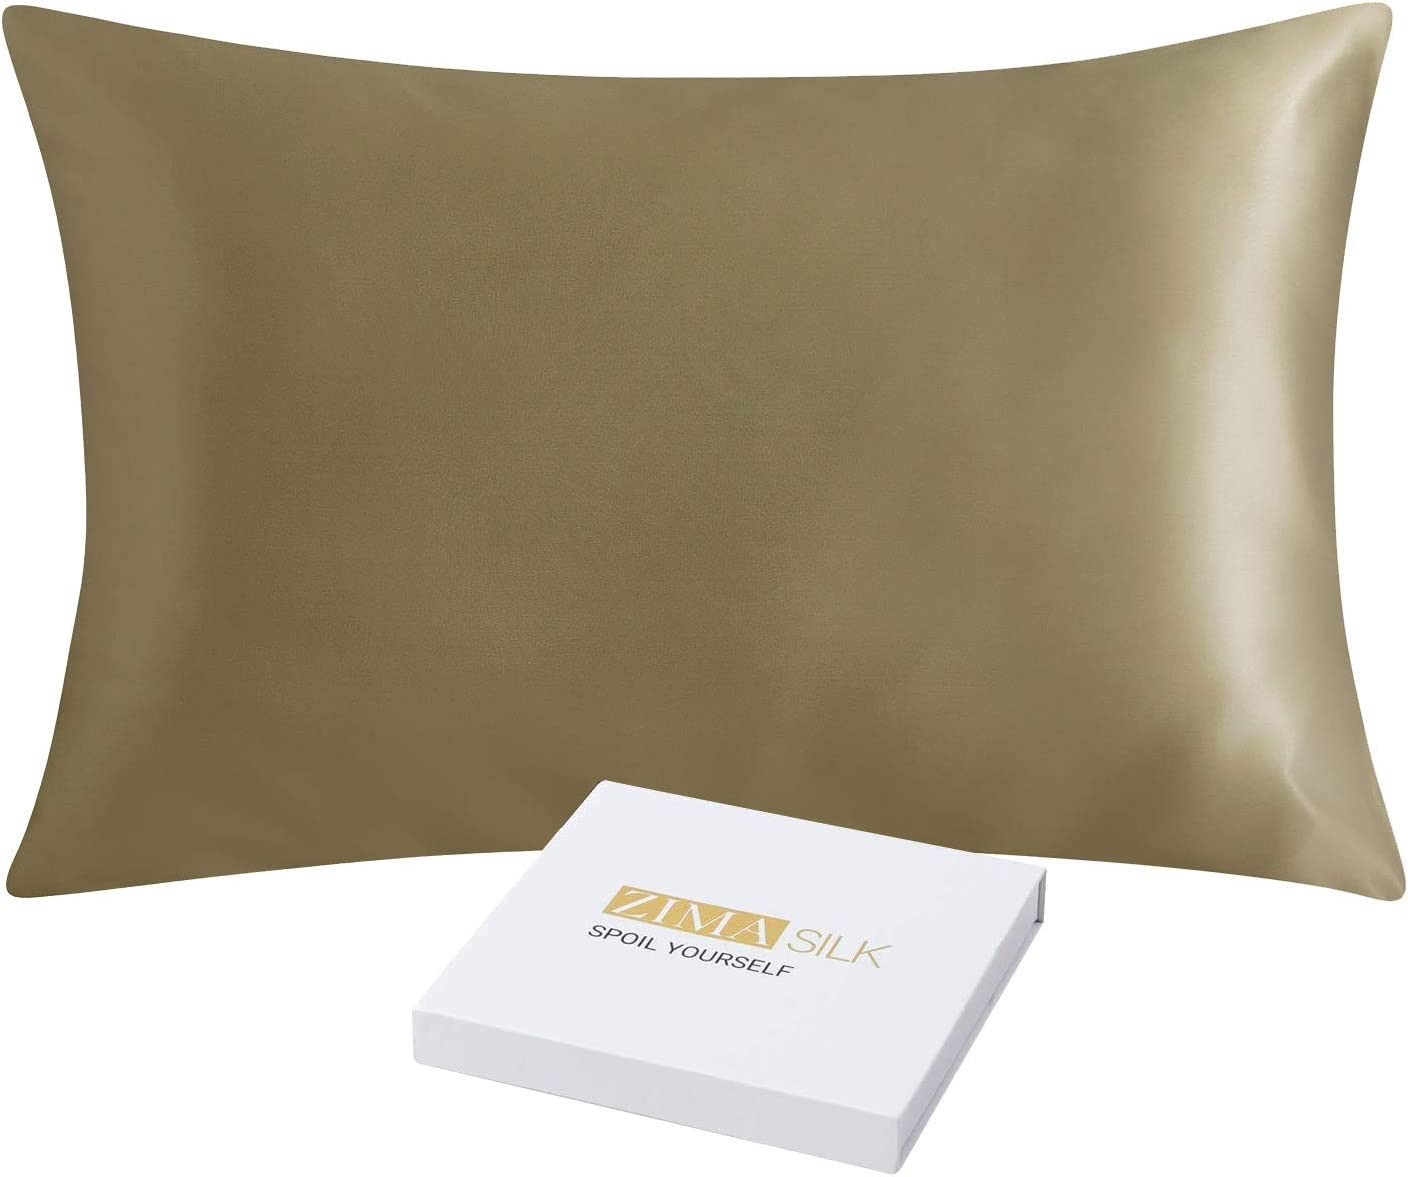 ZIMASILK 25 Momme 100% Mulberry Silk Pillowcase Super sale Dedication period limited Hair and Ski for